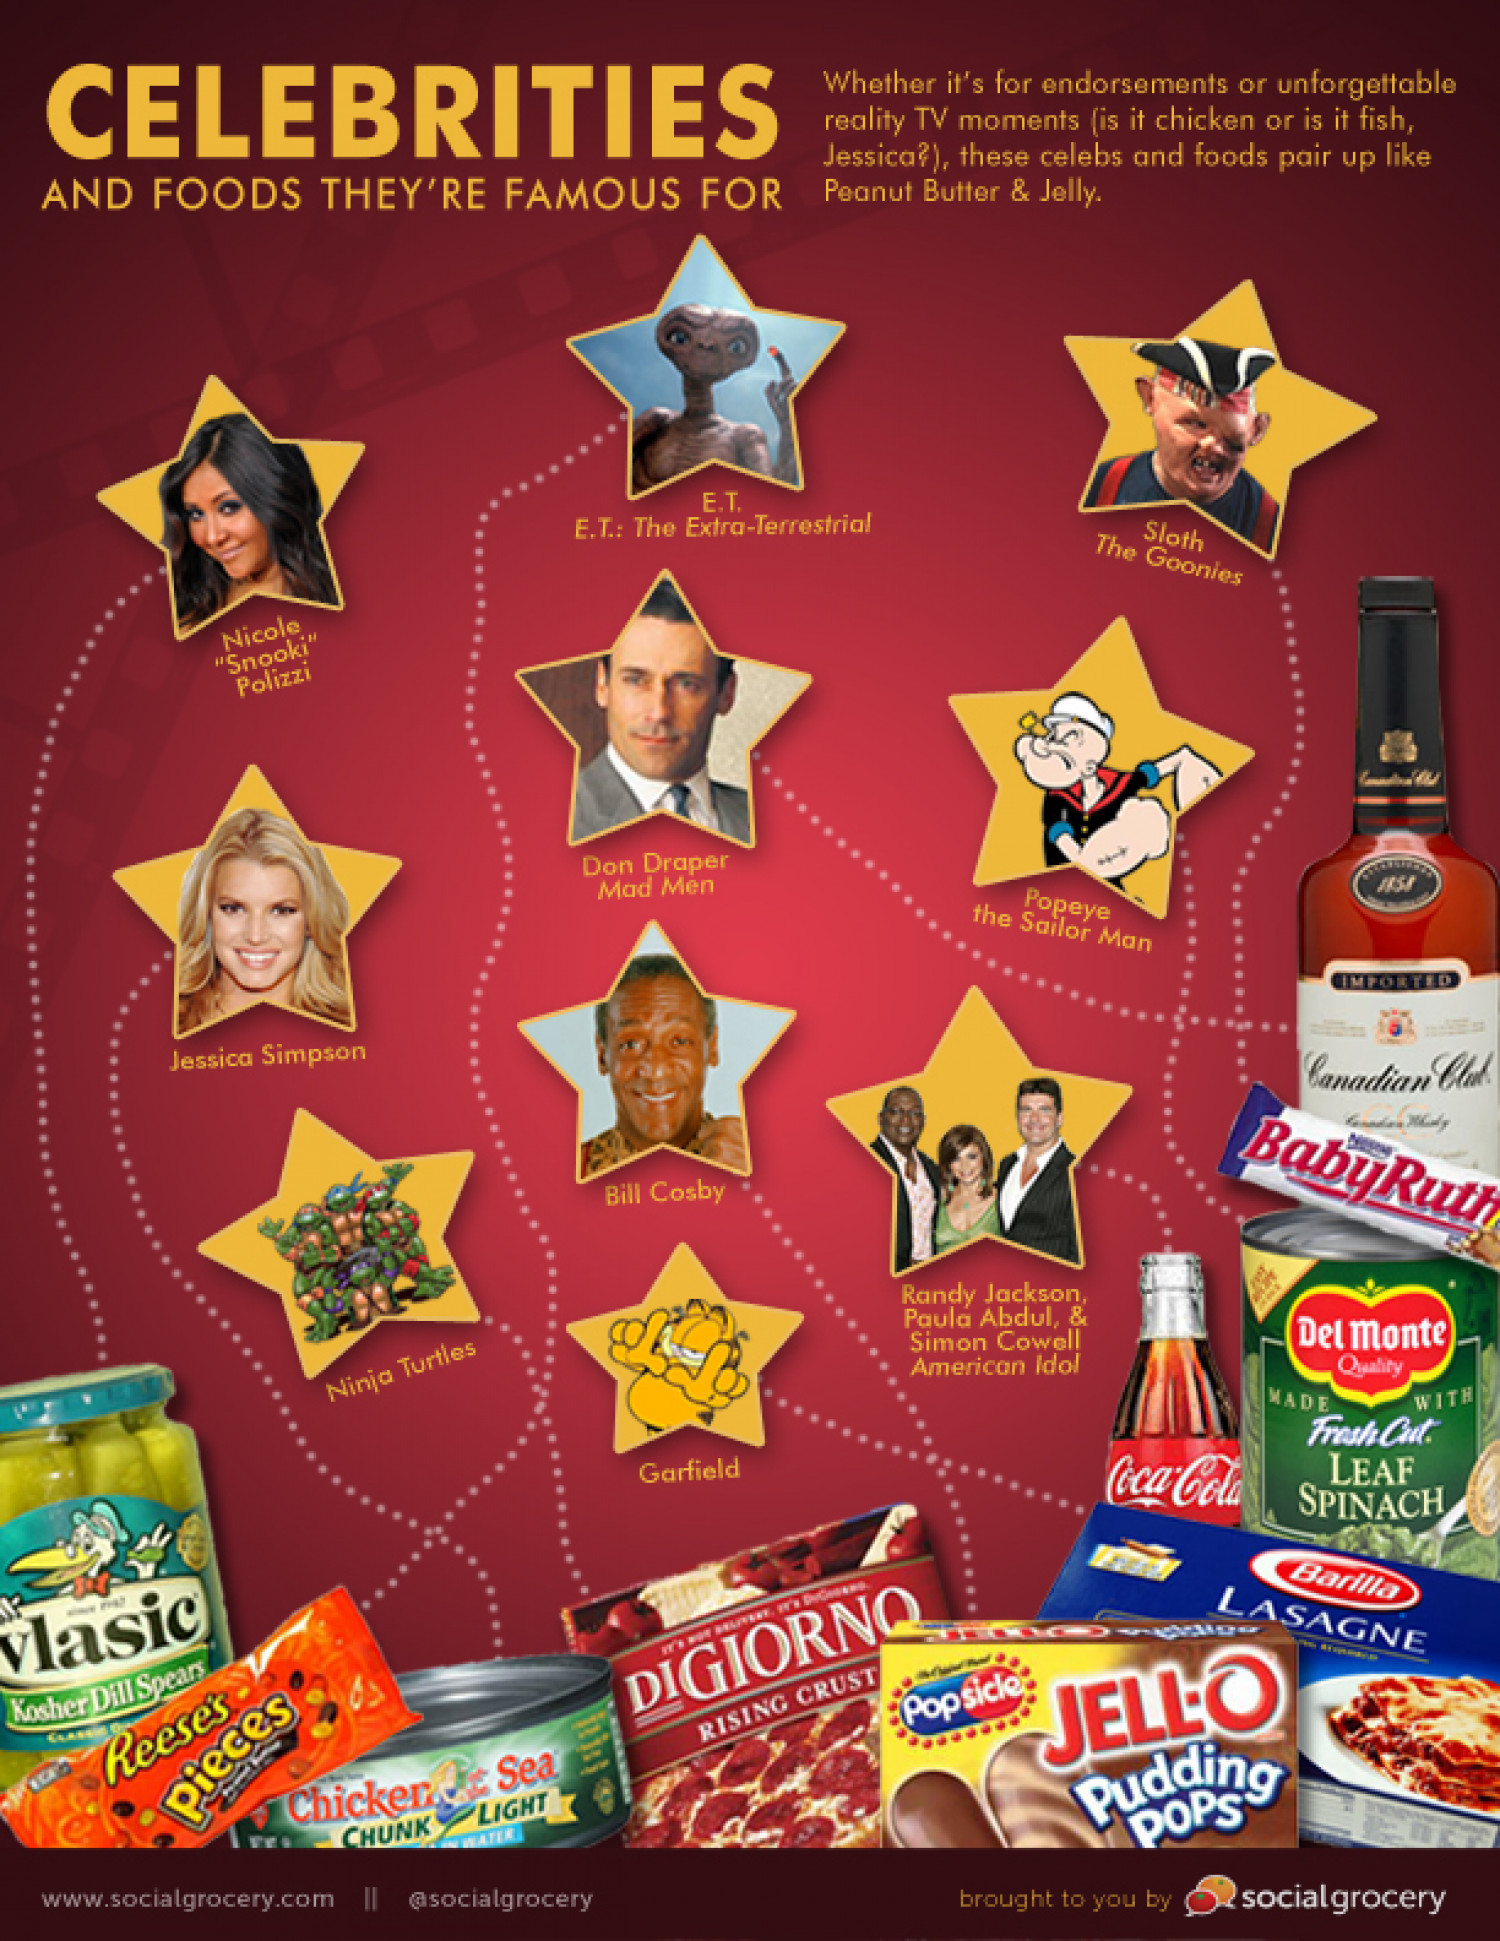 Celebrities and Foods They're Famous For Infographic